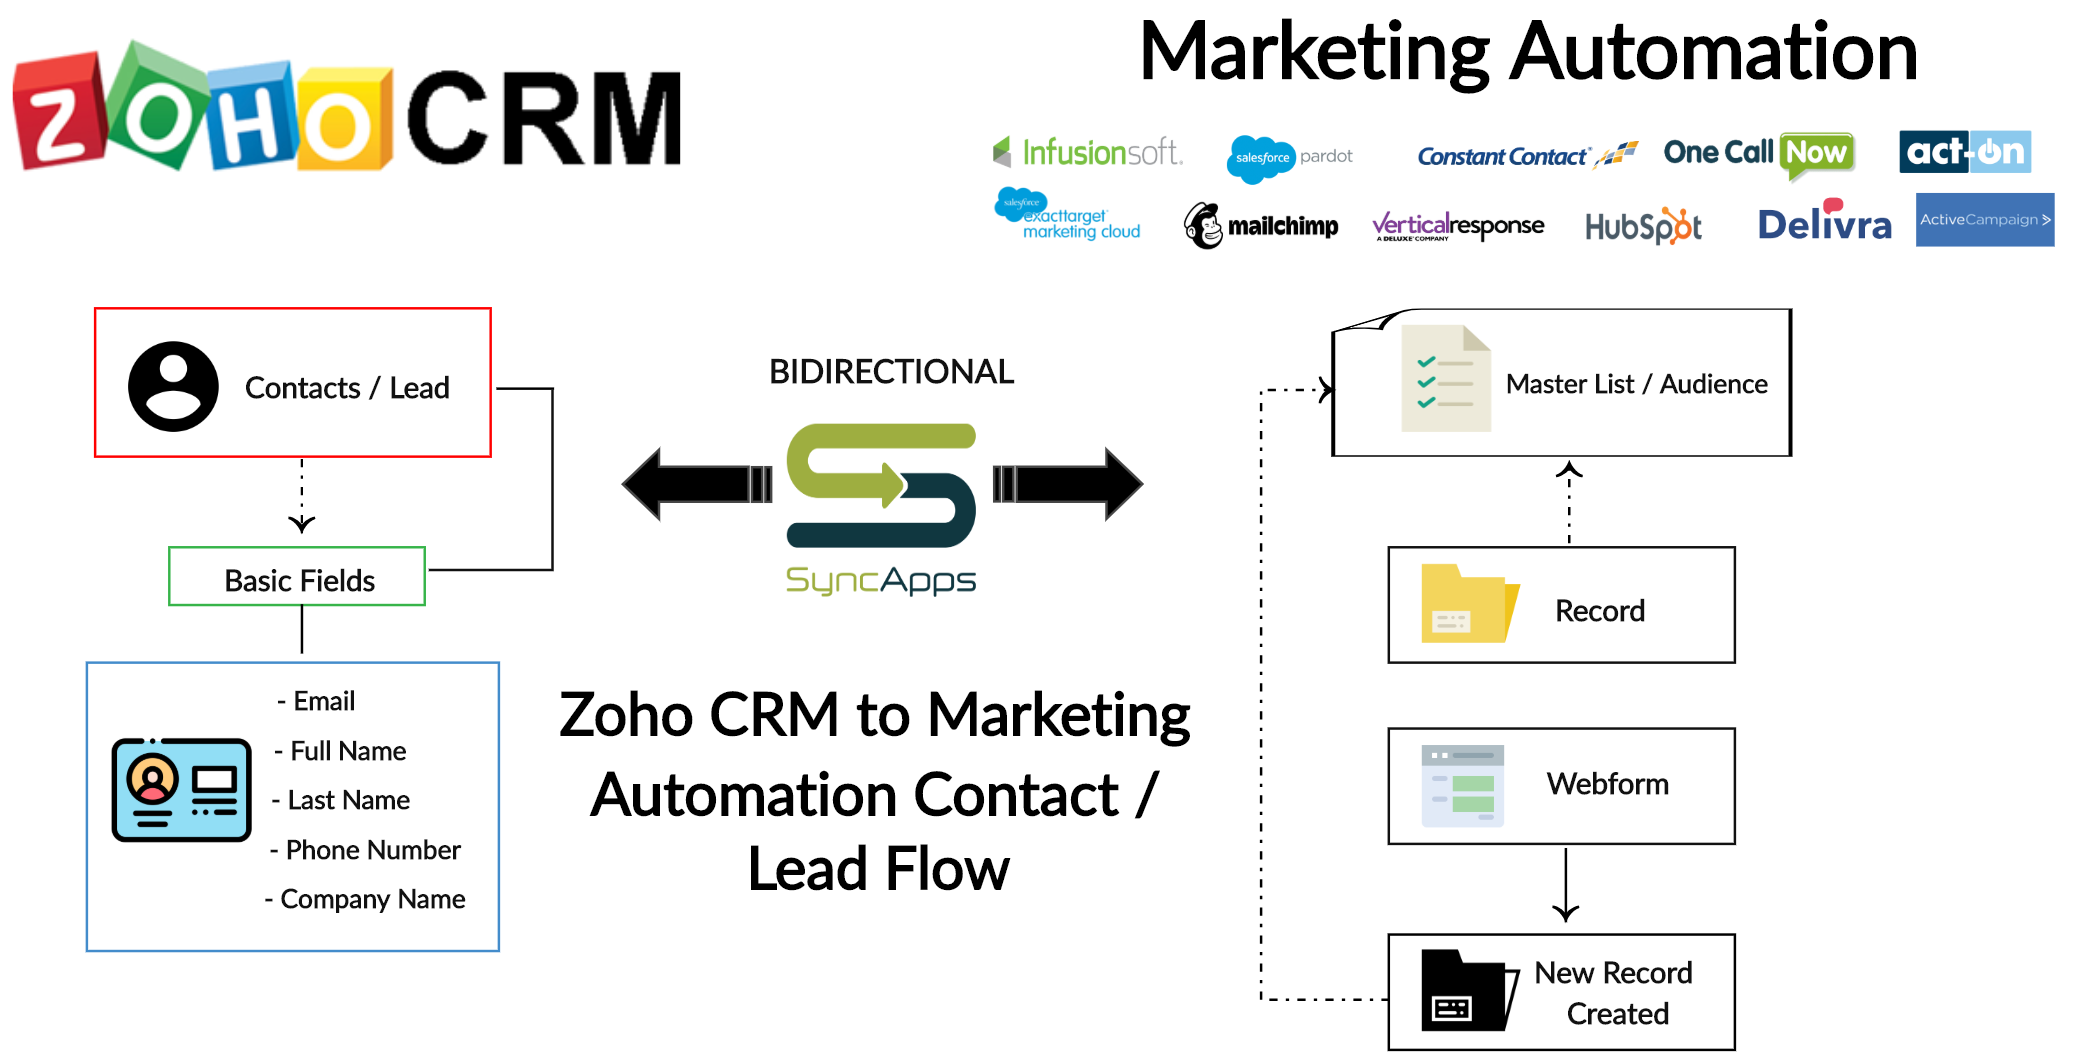 Zoho_CRM_to_Marketing_Automation_Lead_and_Contact_Flow___Creately.png